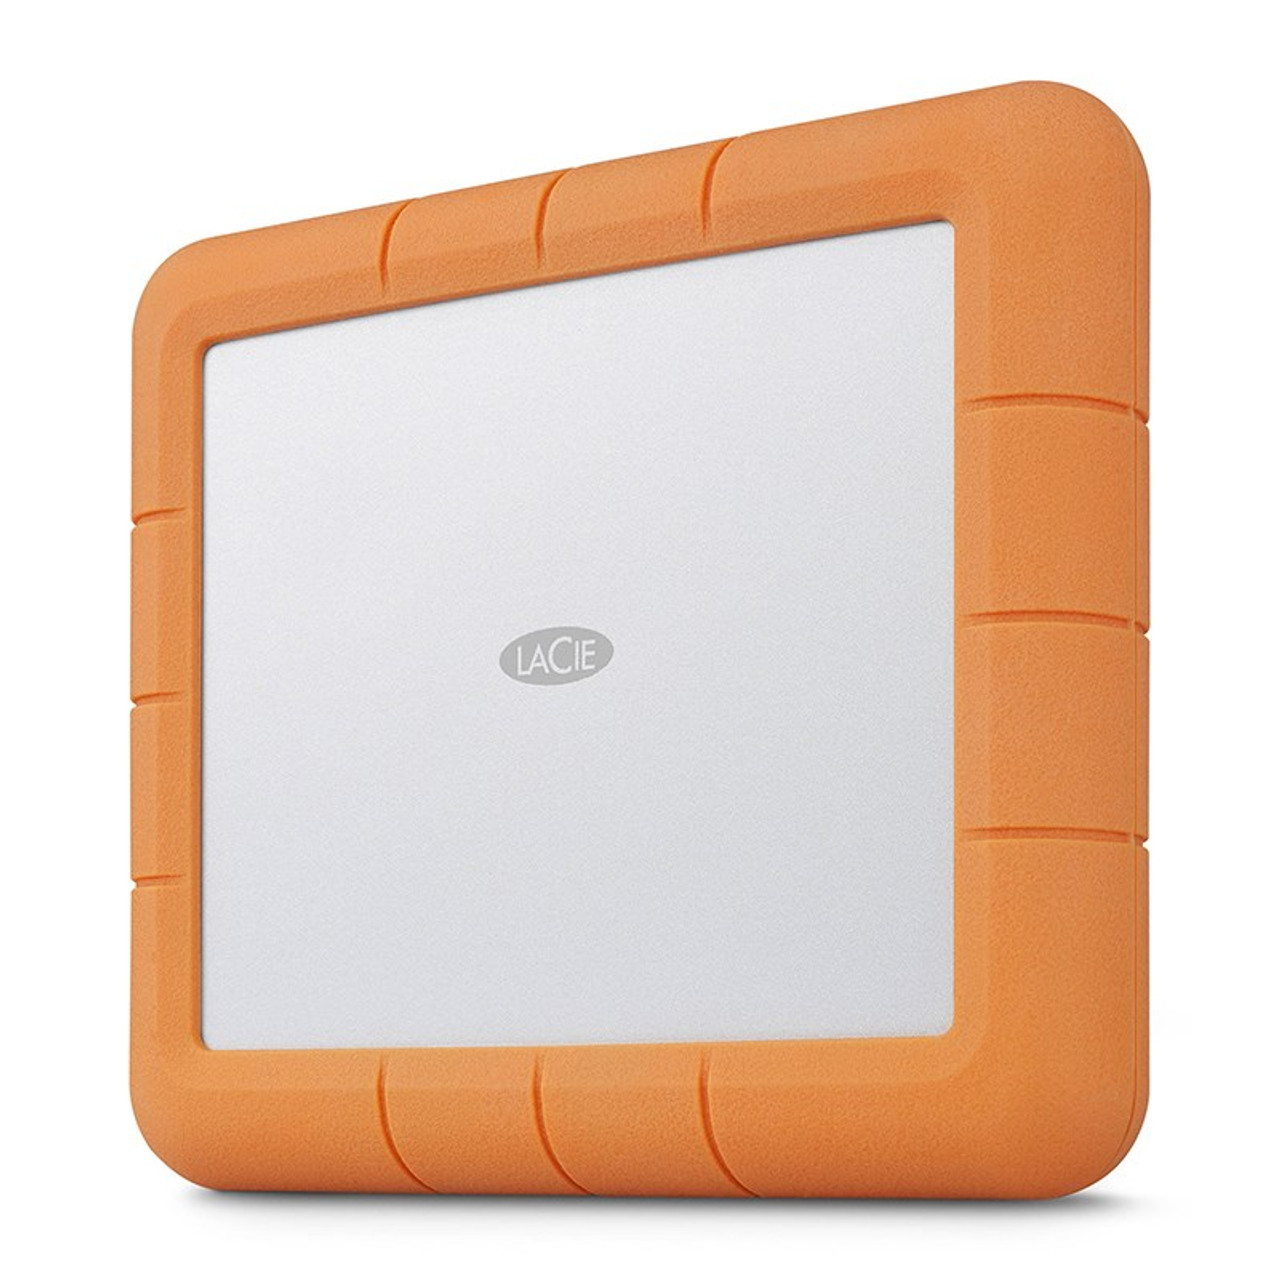 Image for LaCie 8TB Rugged RAID Shuttle USB 3.1 Gen 2 Type-C External Hard Drive CX Computer Superstore